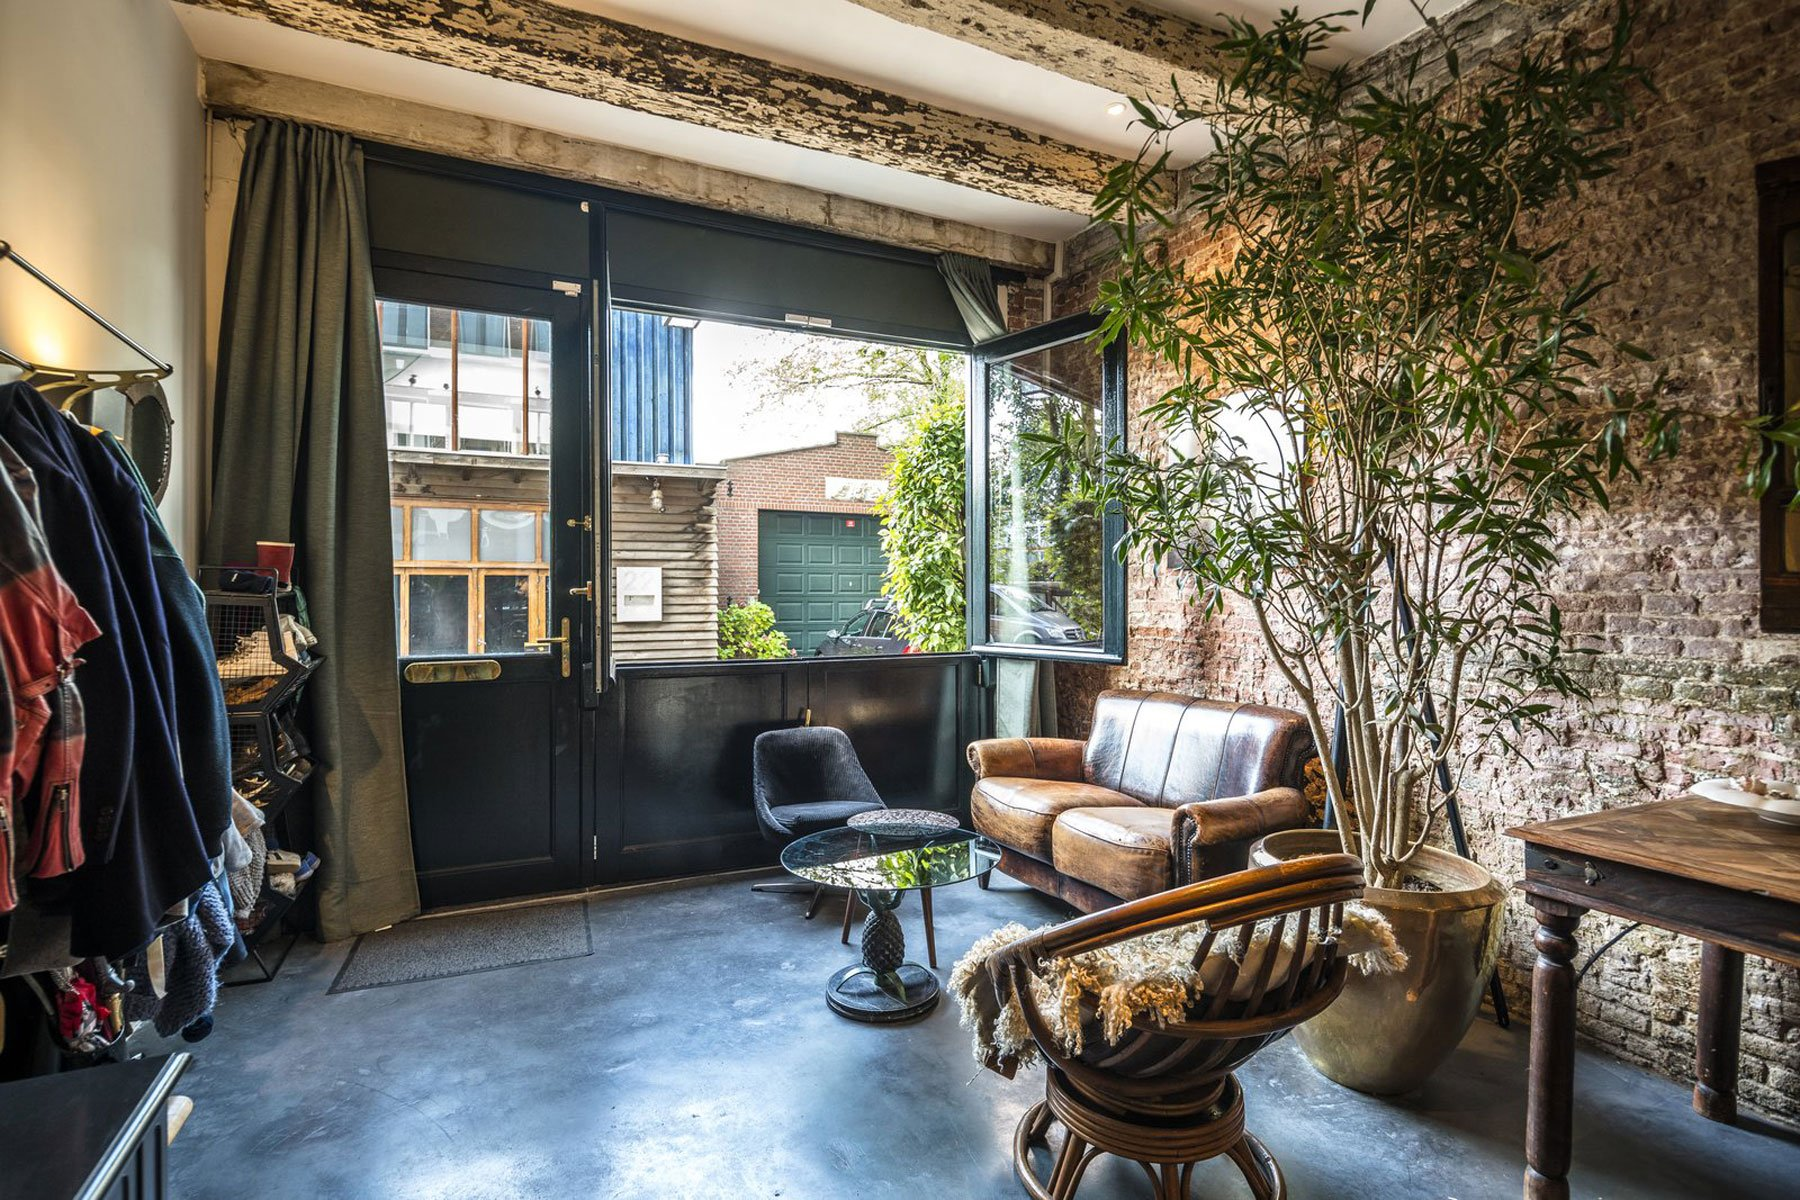 Living In A Garage In Style In Amsterdam